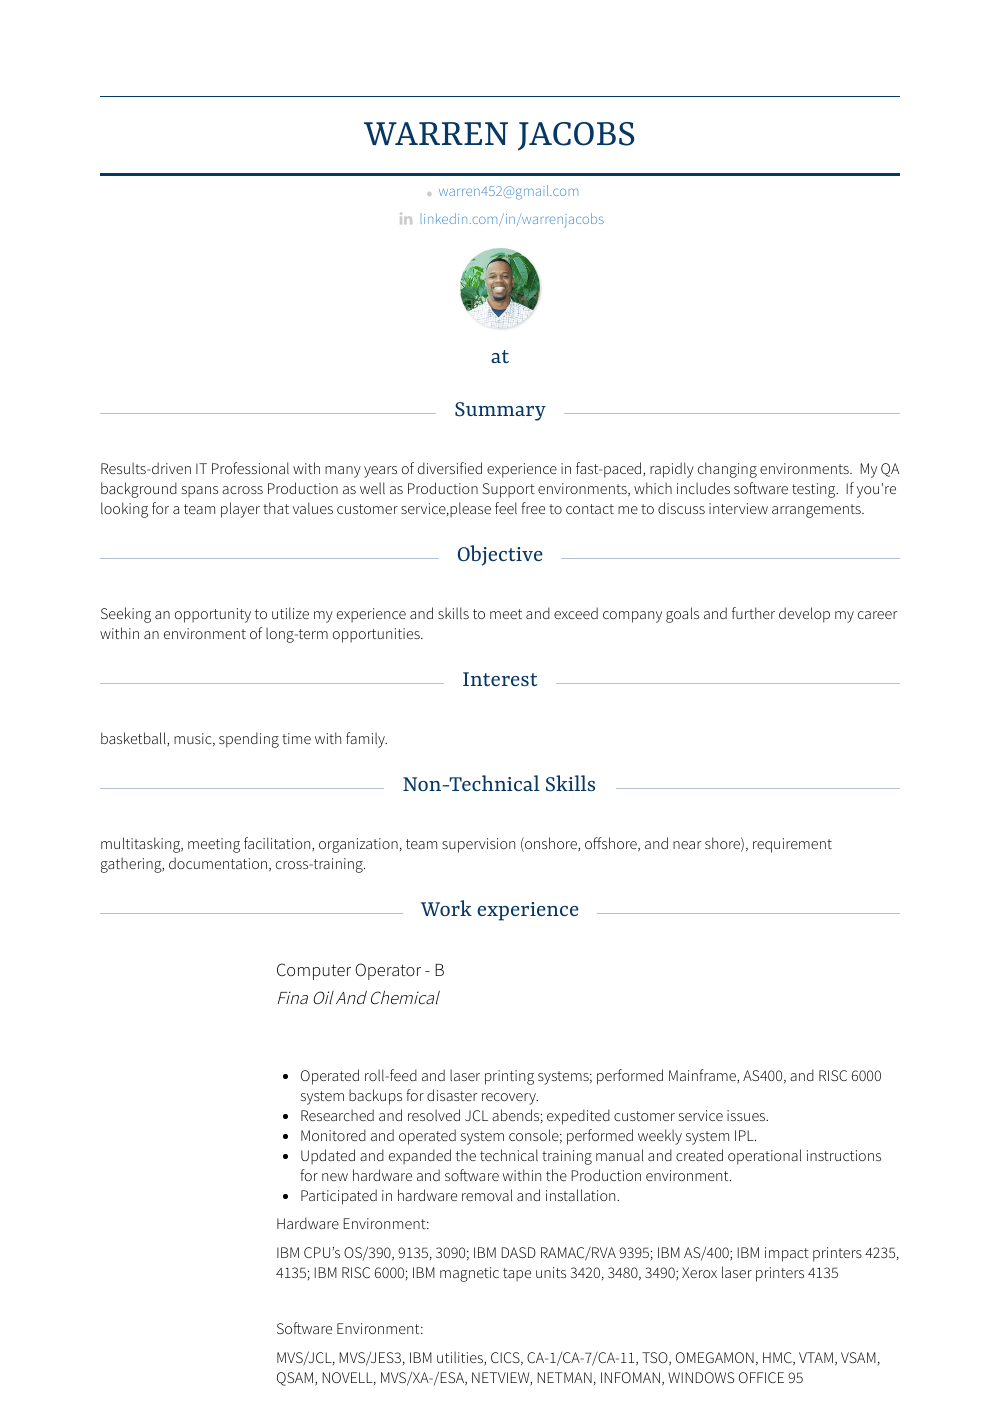 Chemical Operator Resume Computer Operator Resume Samples Templates Visualcv